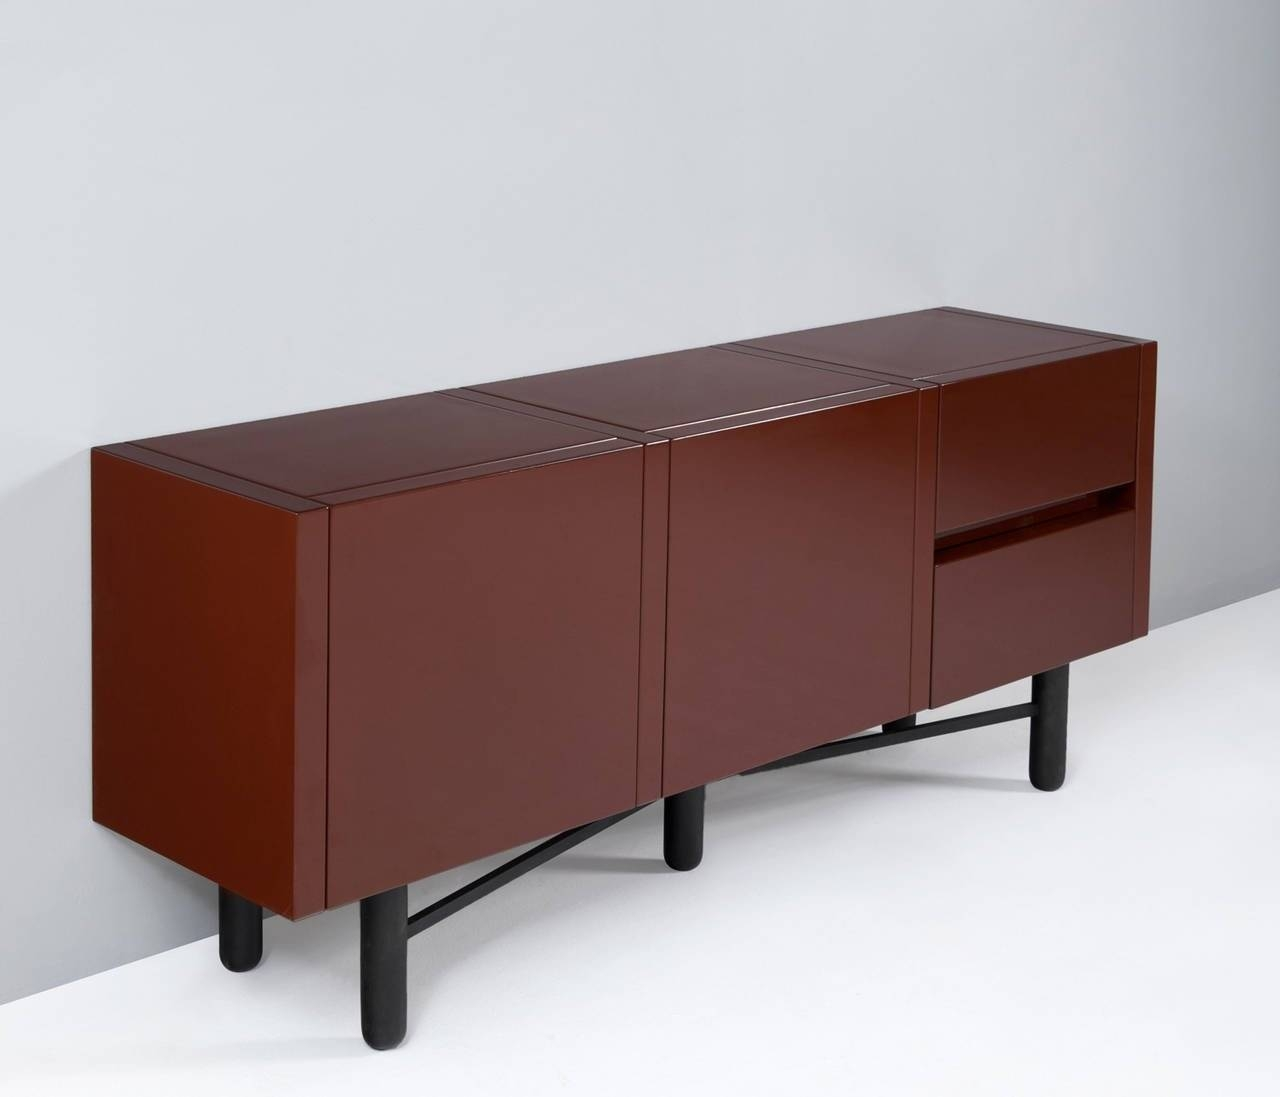 Roche Bobois Red Lacquered High Gloss Sideboard For Sale At 1Stdibs throughout High Gloss Sideboards (Image 24 of 30)